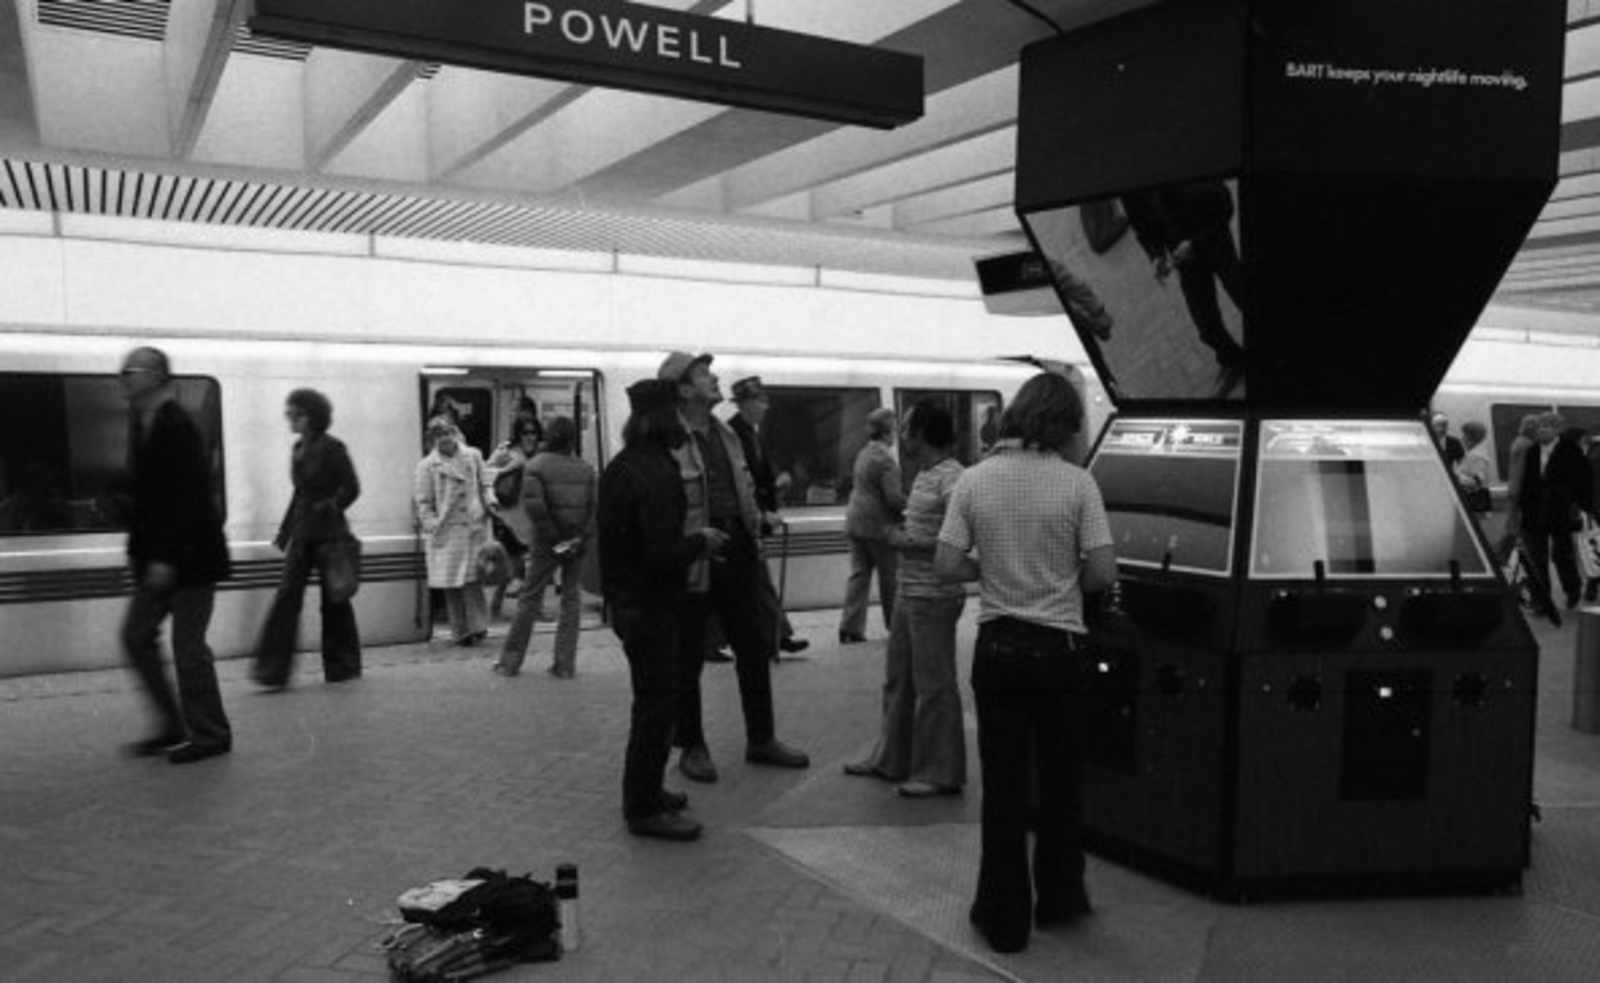 Pop Up Bart Arcade Proves Past Better Than Future Uptown